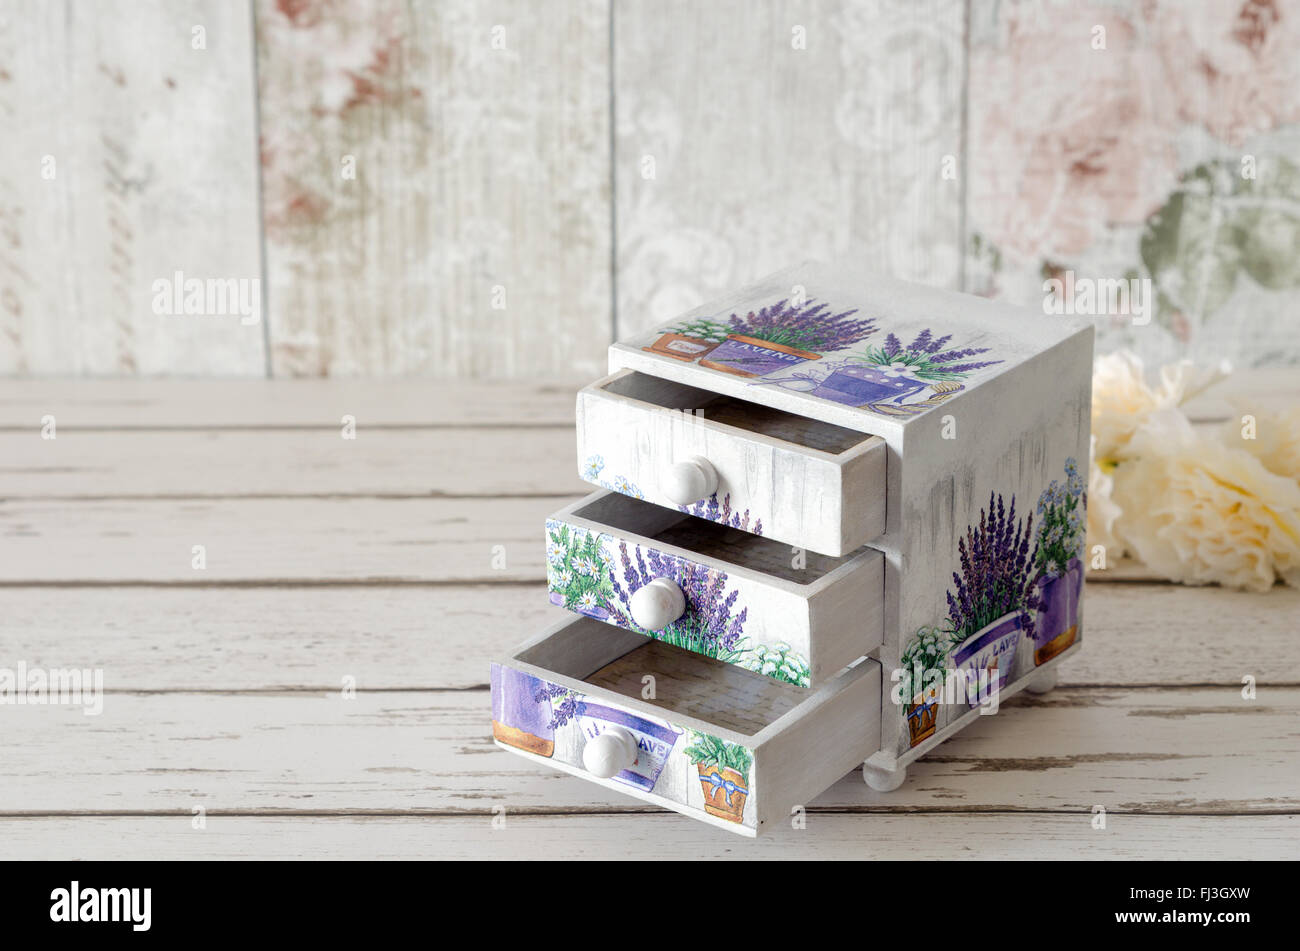 A handmade chest of trinket drawers decoupaged with vintage paperwith pots of Lavender on a rustic wooden background - Stock Image